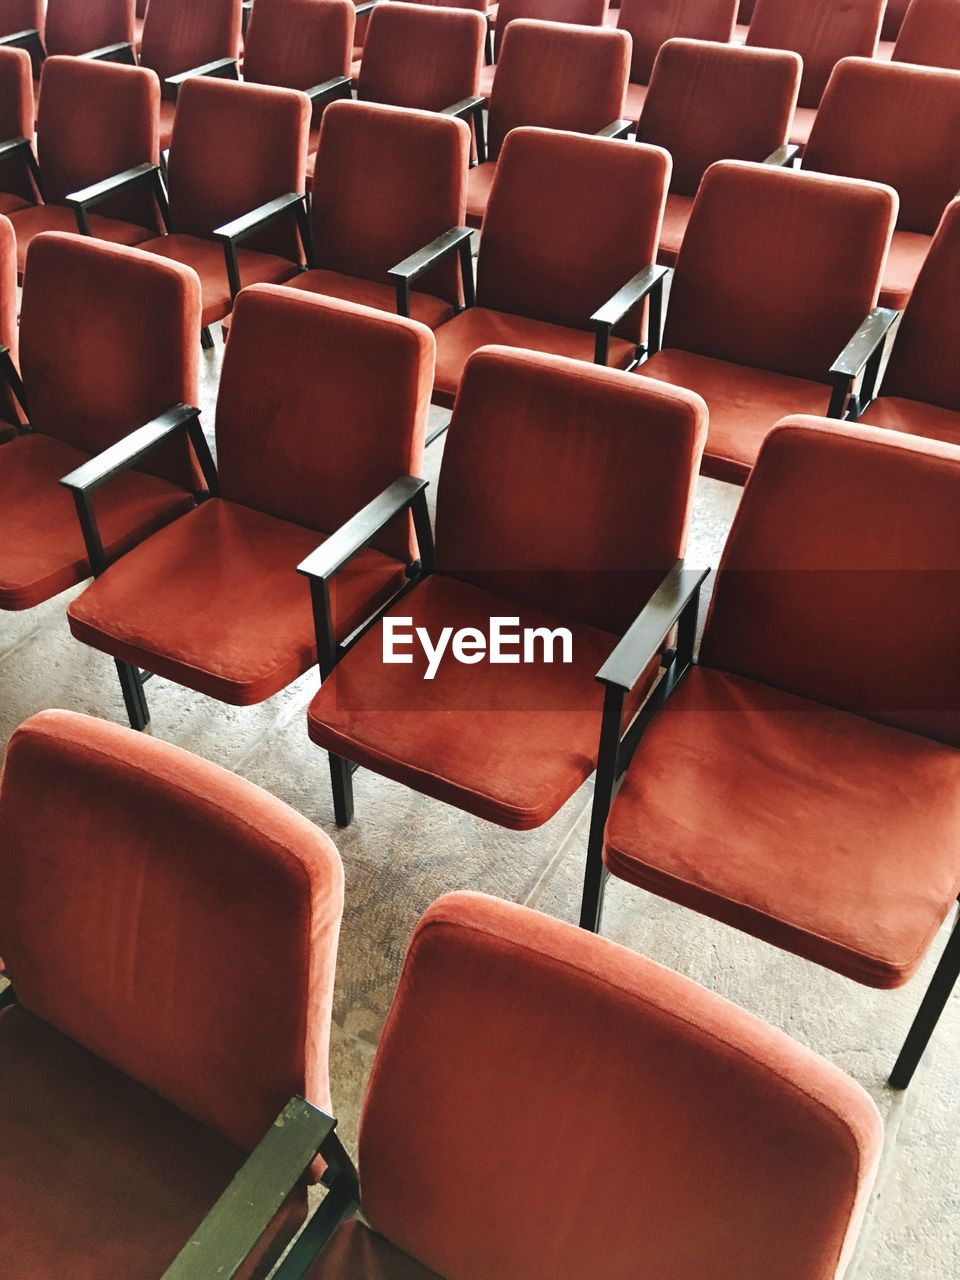 Full frame shot of empty chairs at stage theater